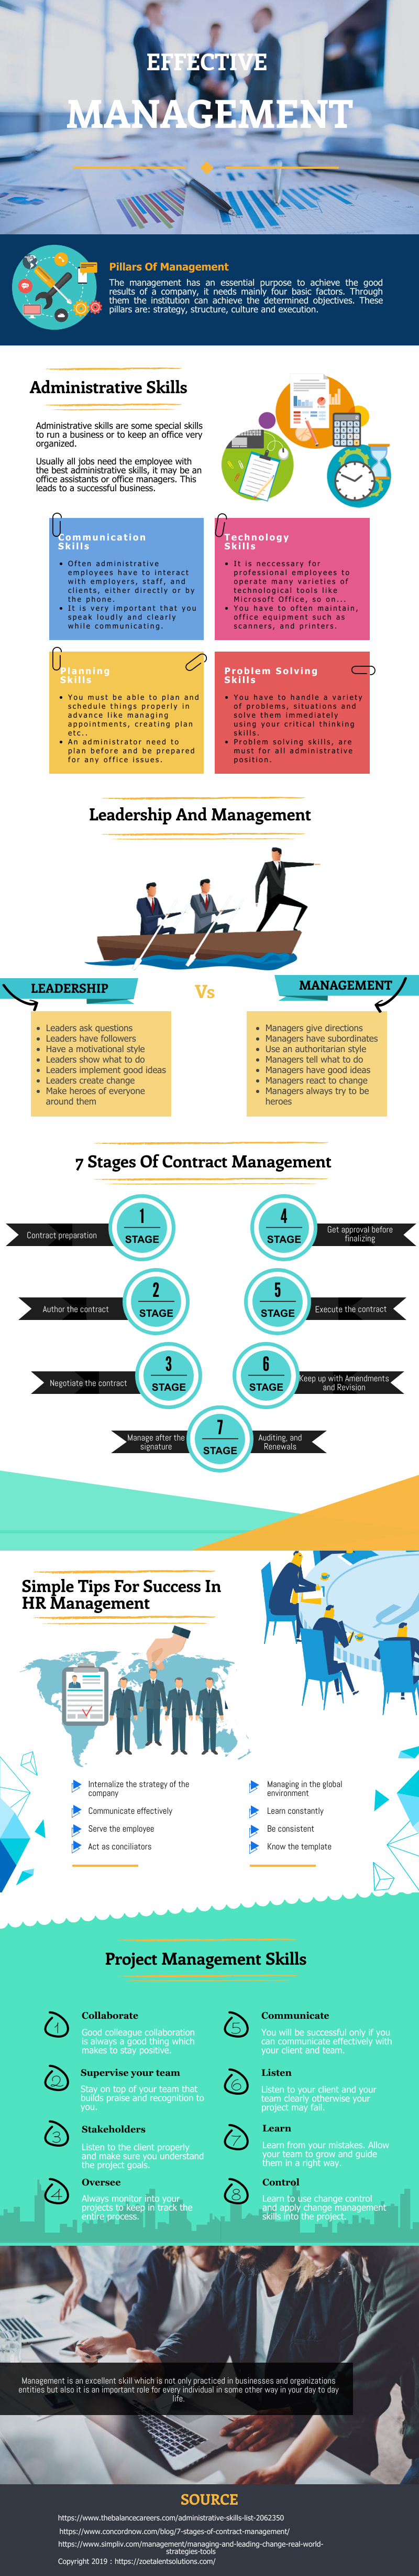 Effective Management Infographic Image1